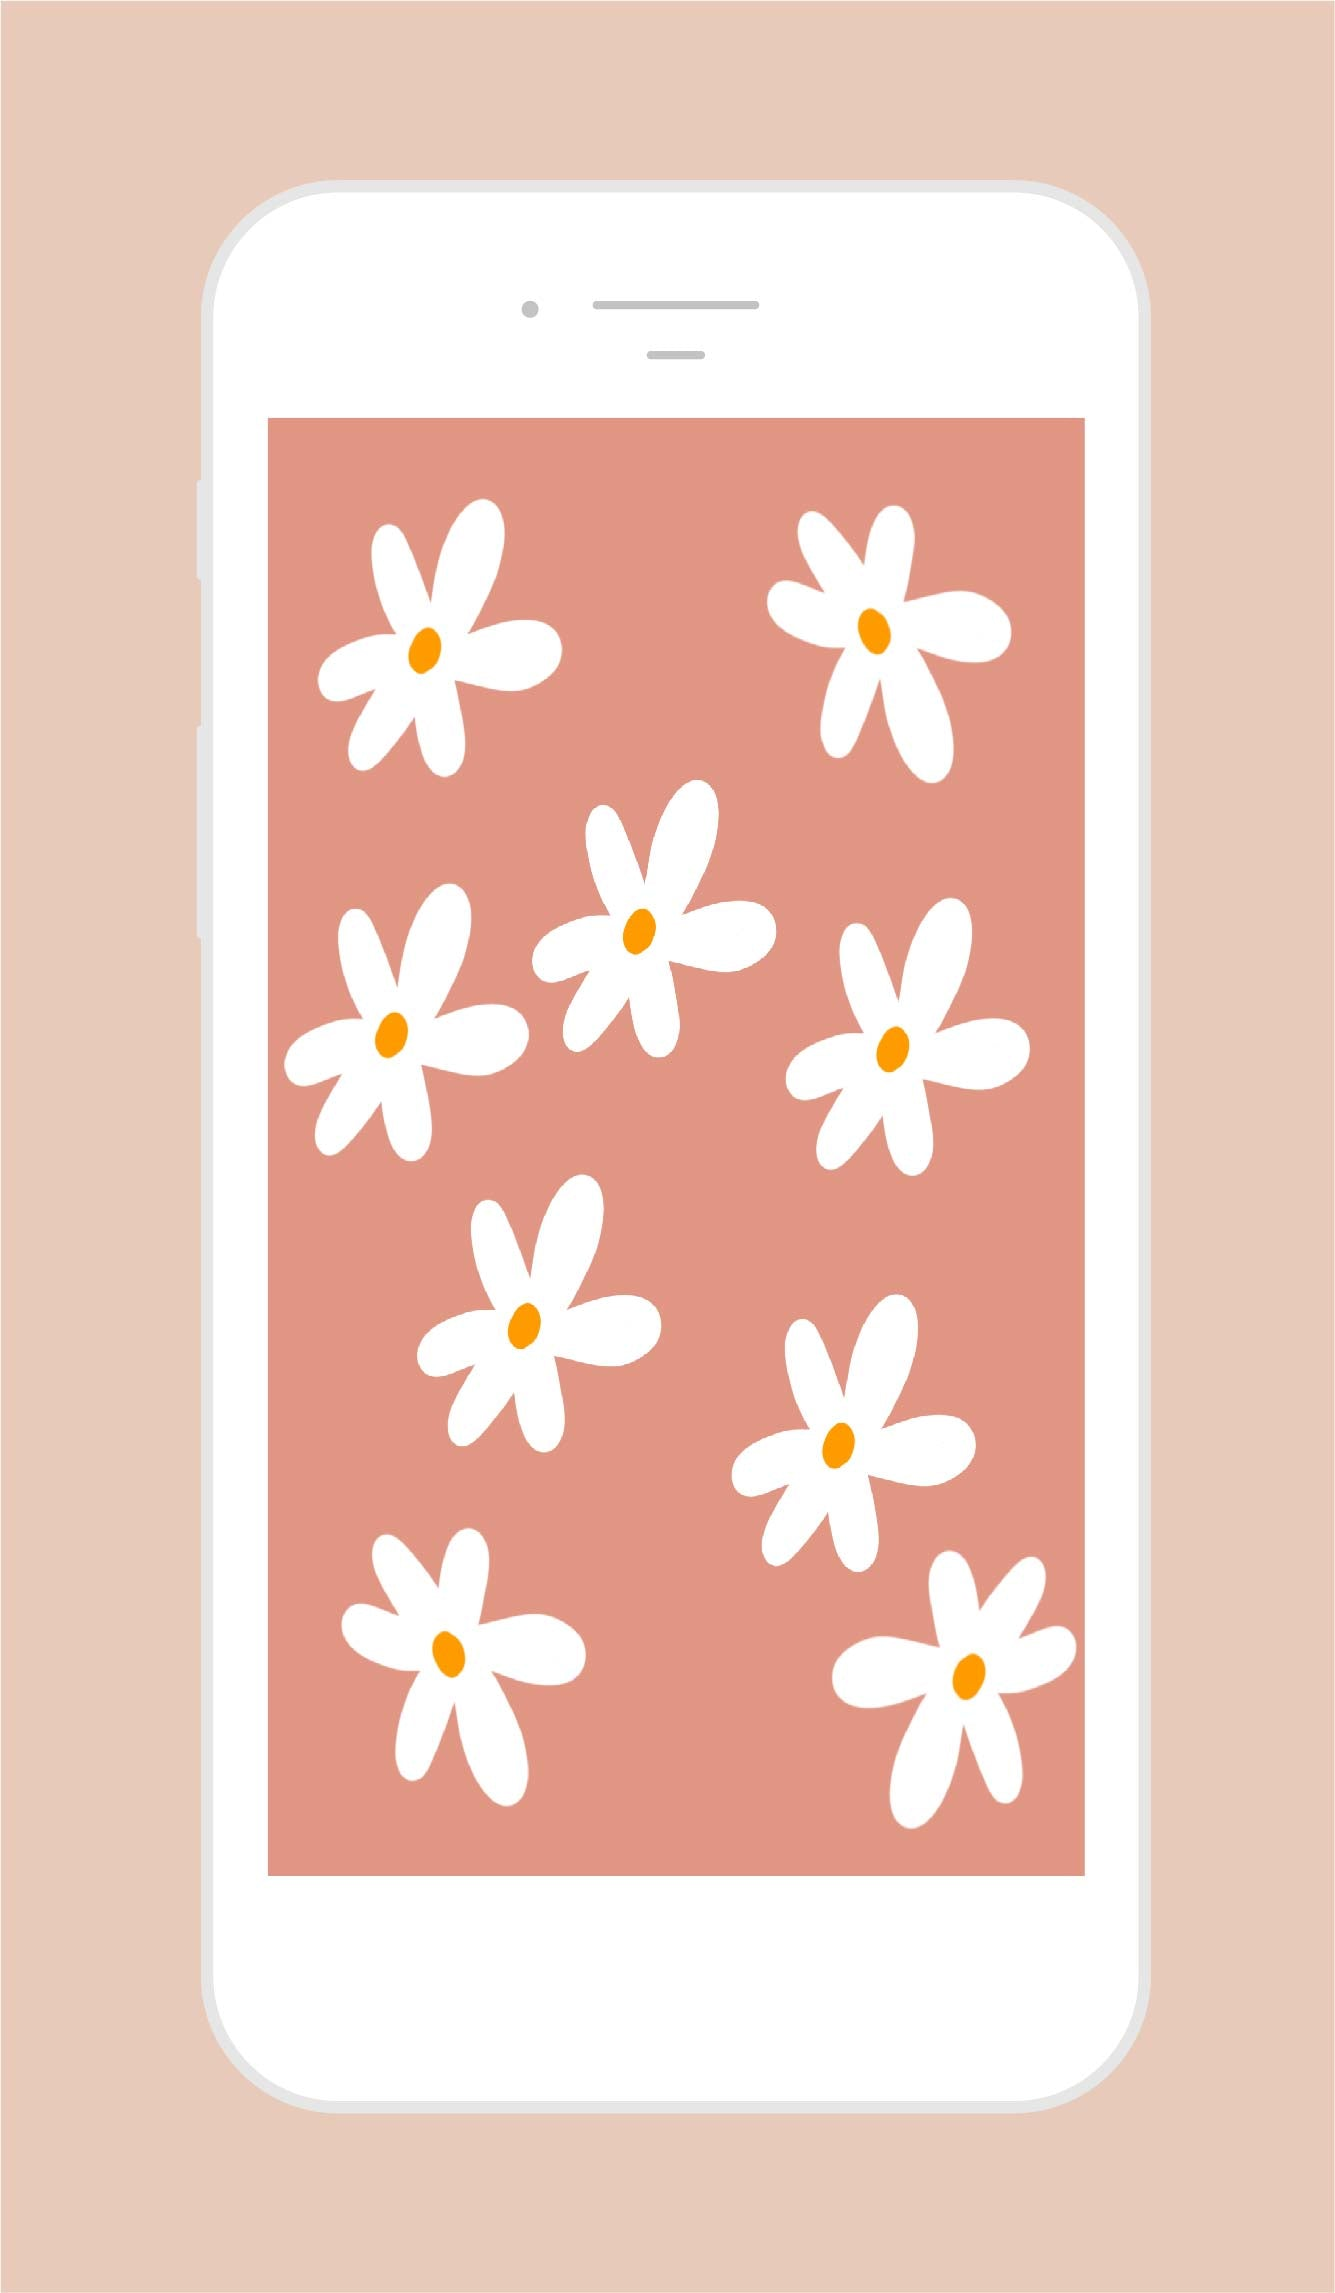 Snow Daisy Phone Wallpaper